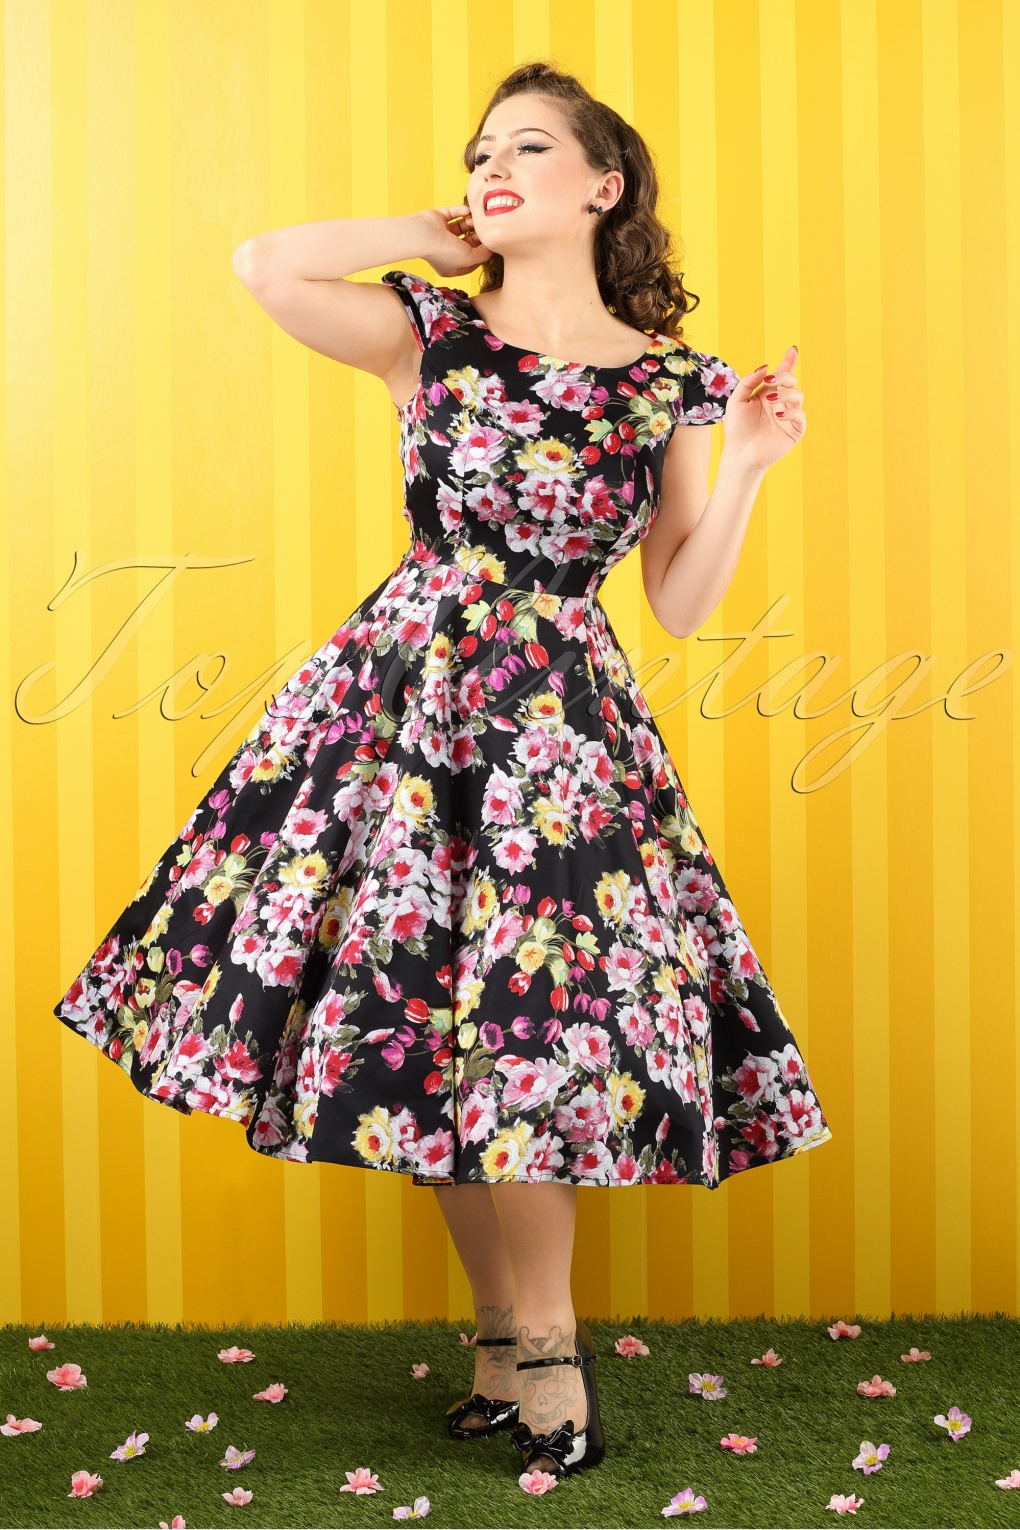 1950s Swing Dresses 50s Daisy Floral Swing Dress in Black £52.08 AT vintagedancer.com